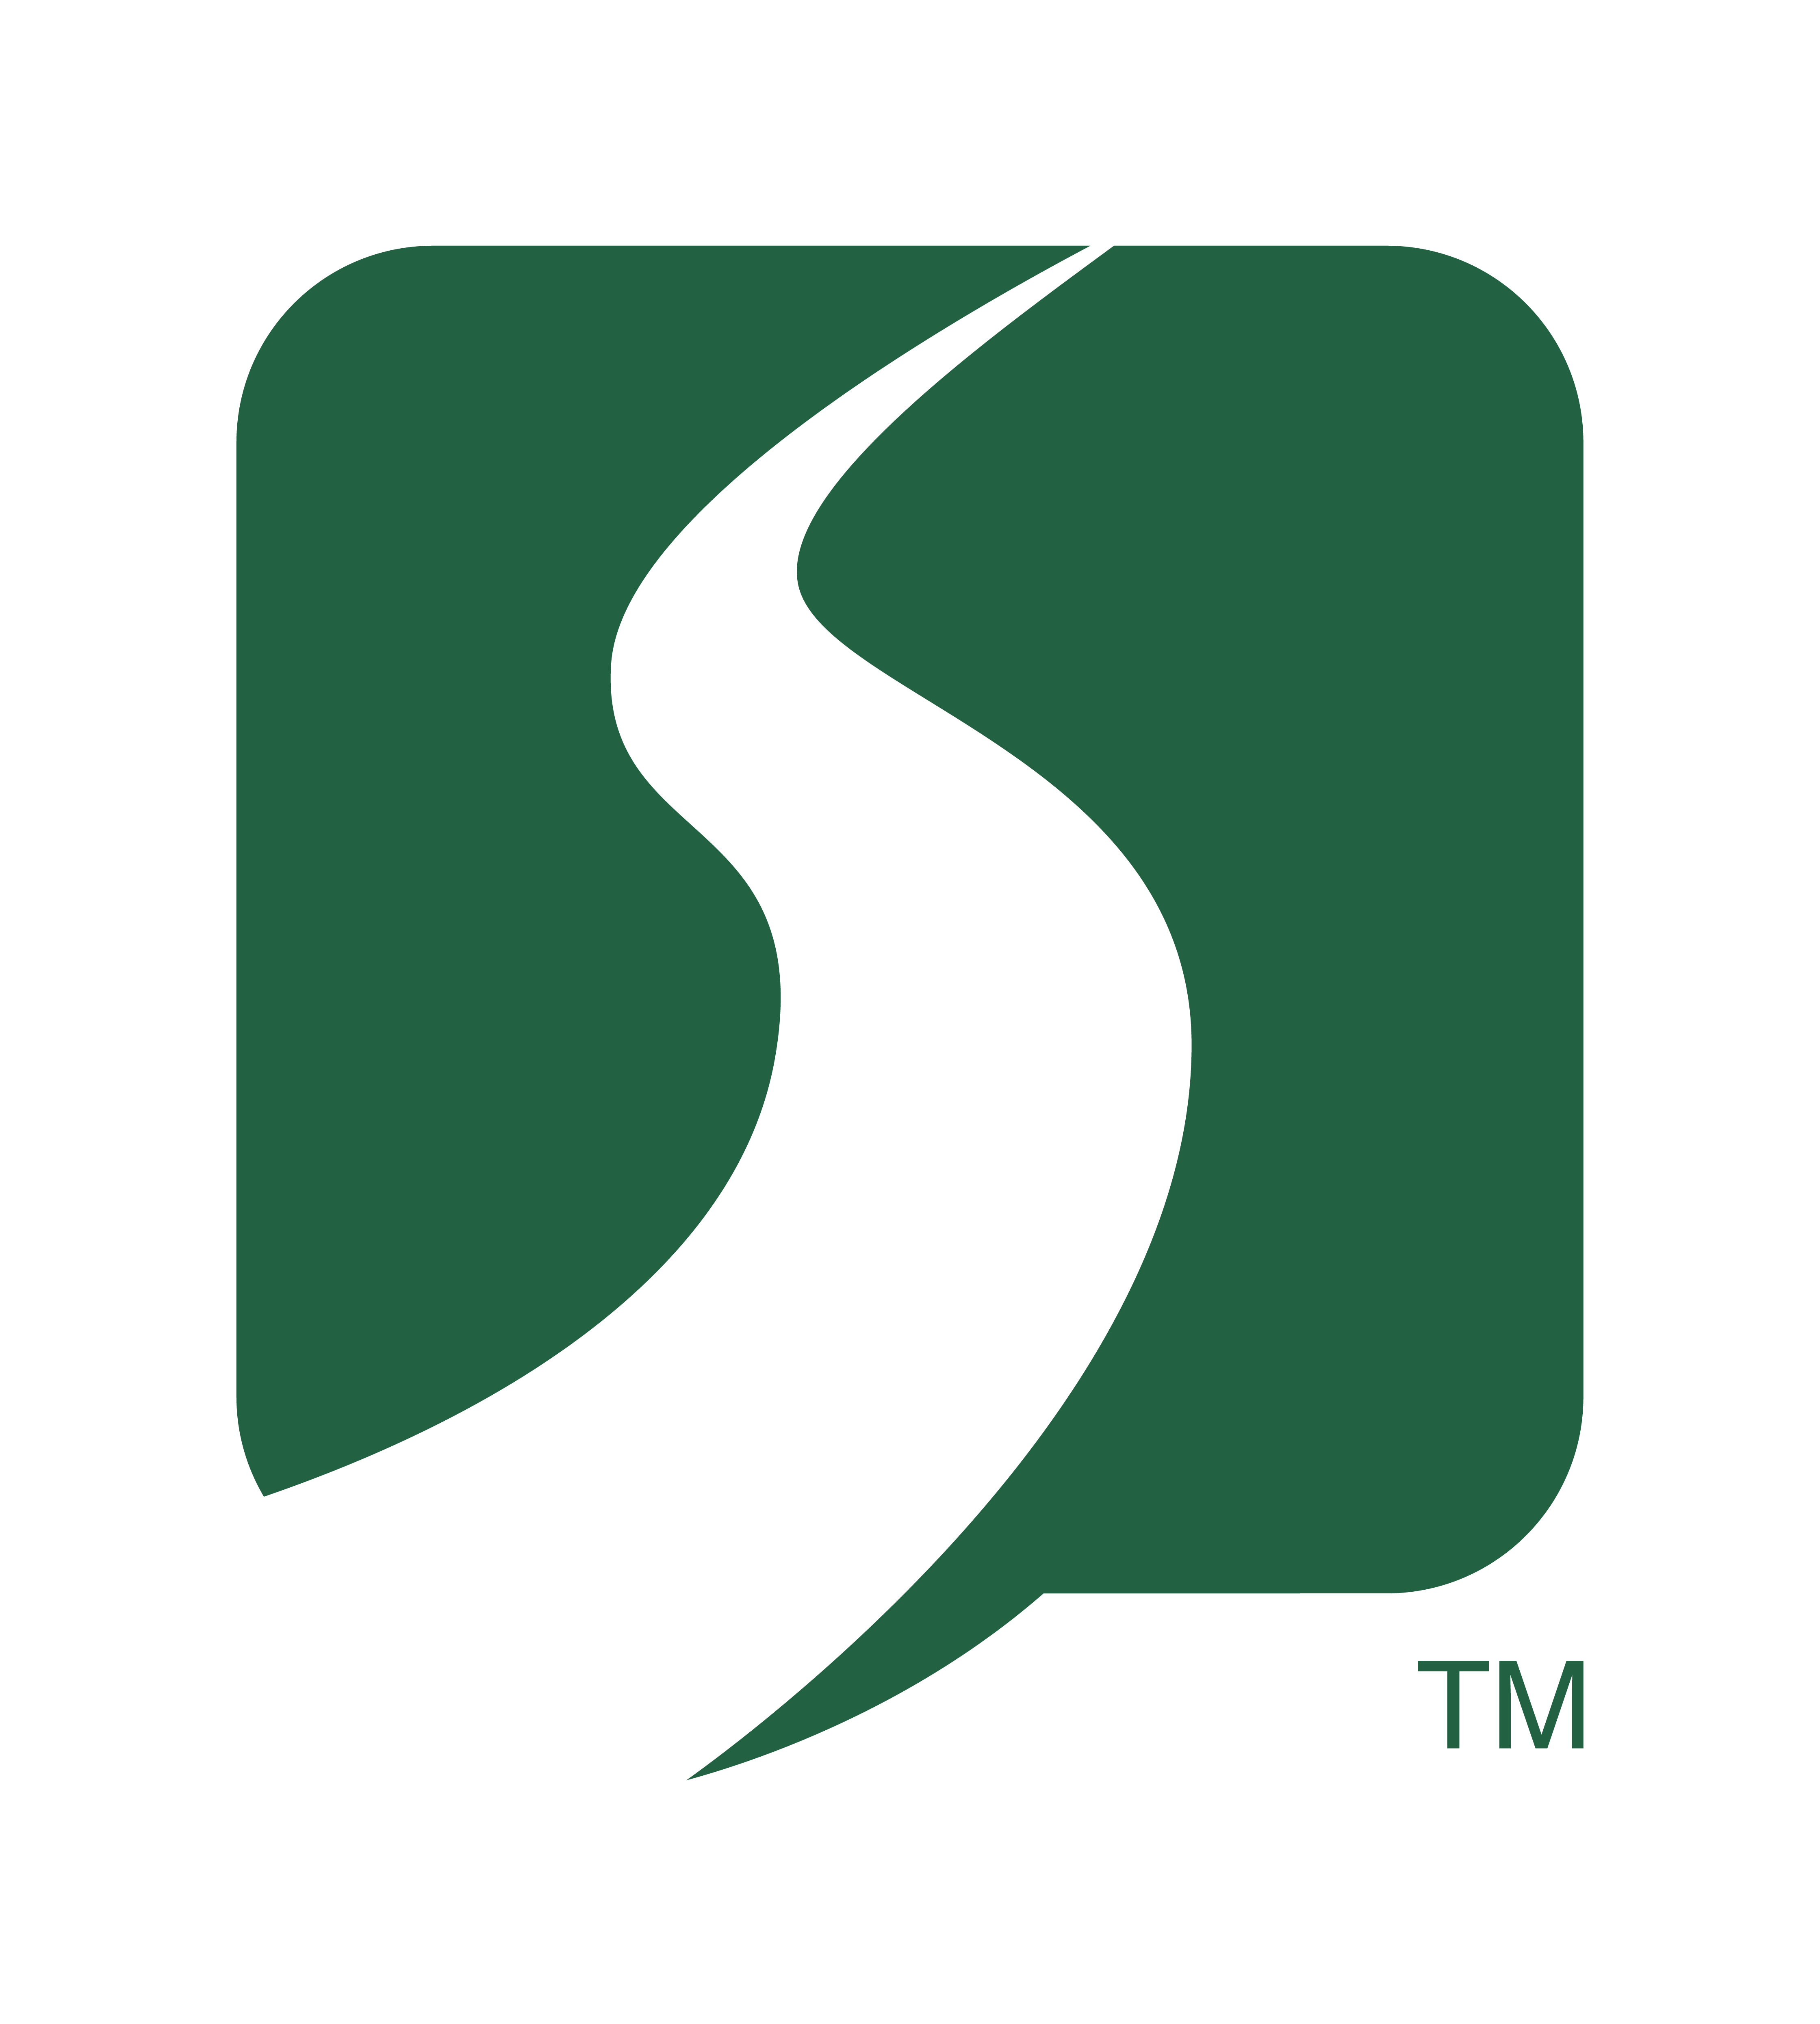 green slope icon